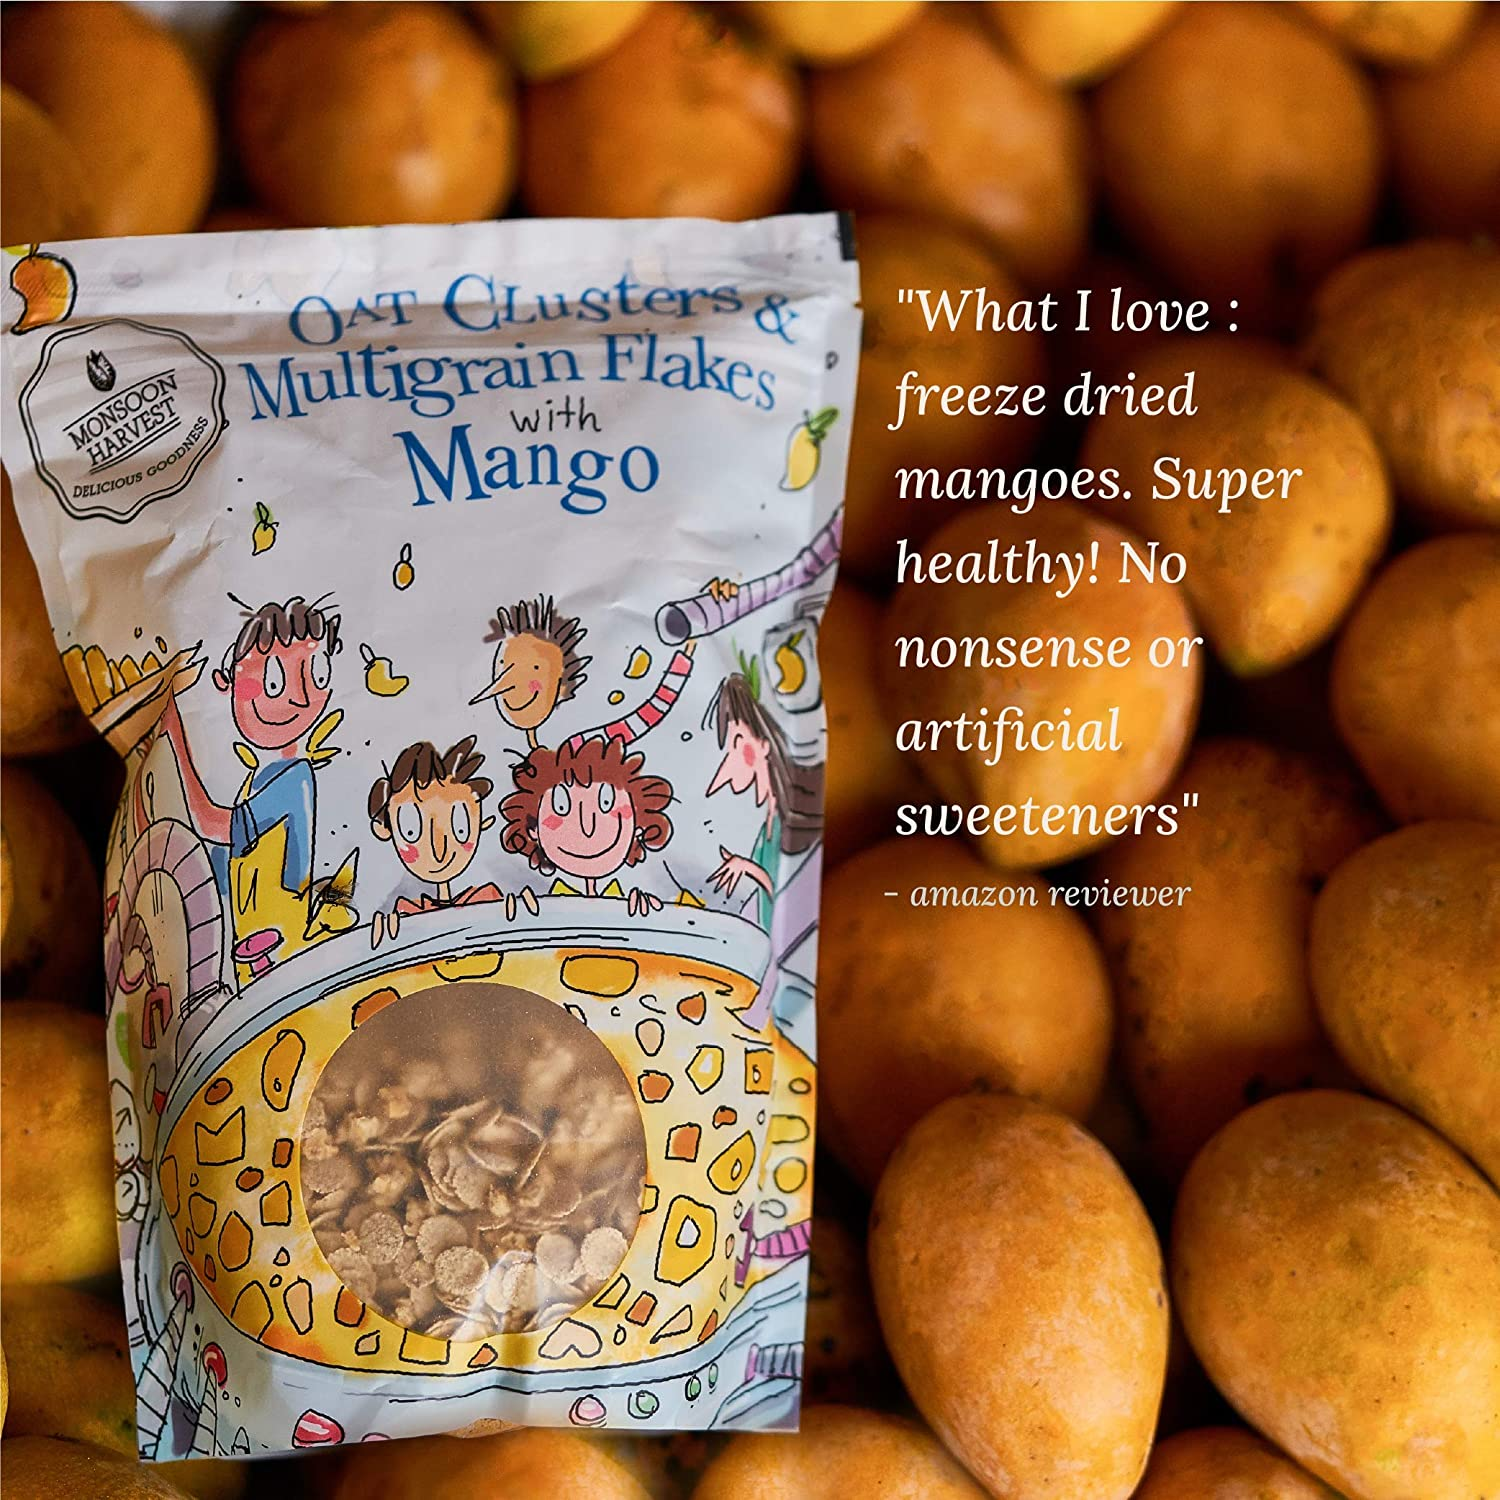 Monsoon Harvest Oats Clusters & Multigrain Flakes with Mango